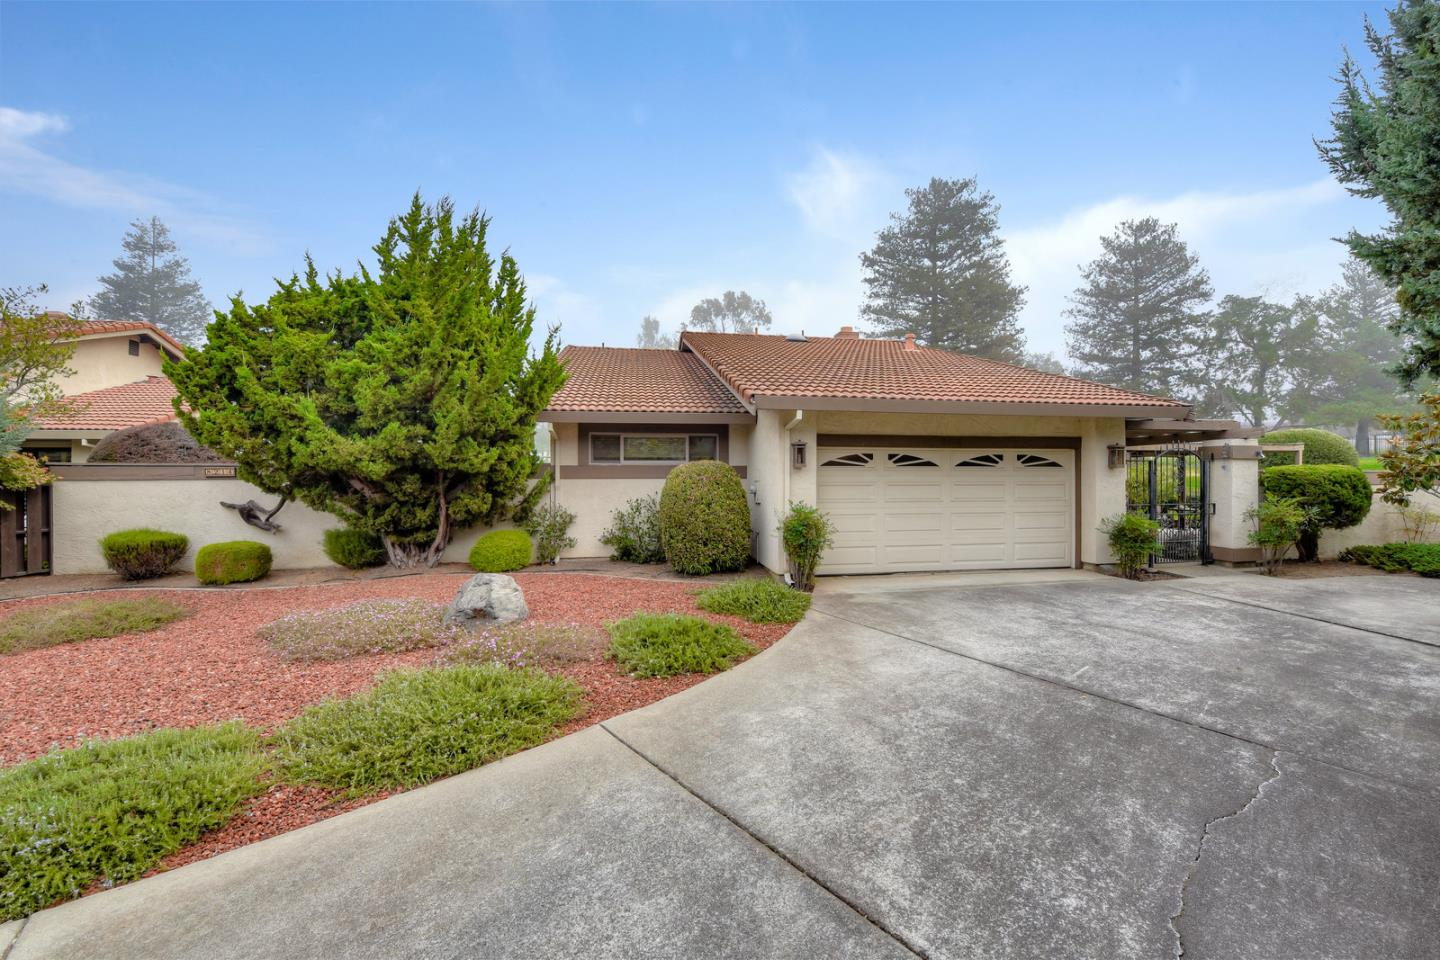 8214 Claret CT, Evergreen in Santa Clara County, CA 95135 Home for Sale